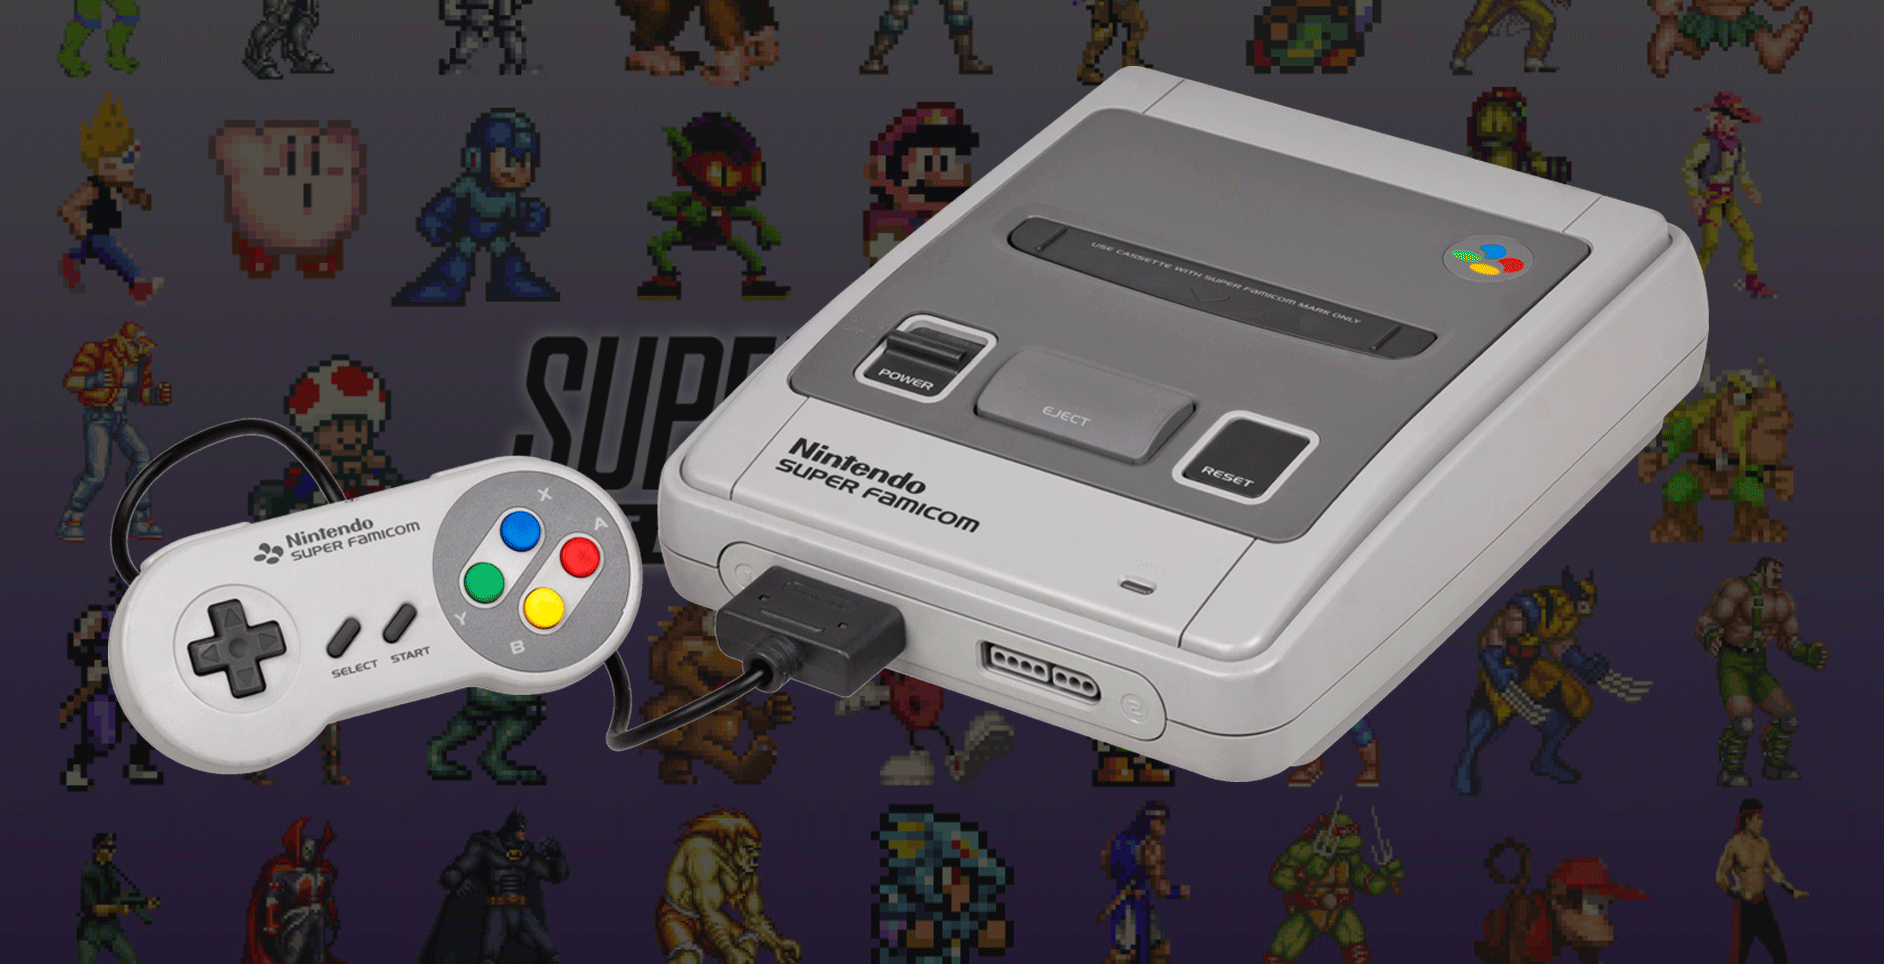 We may get the SNES Classic this Christmas - GameAxis